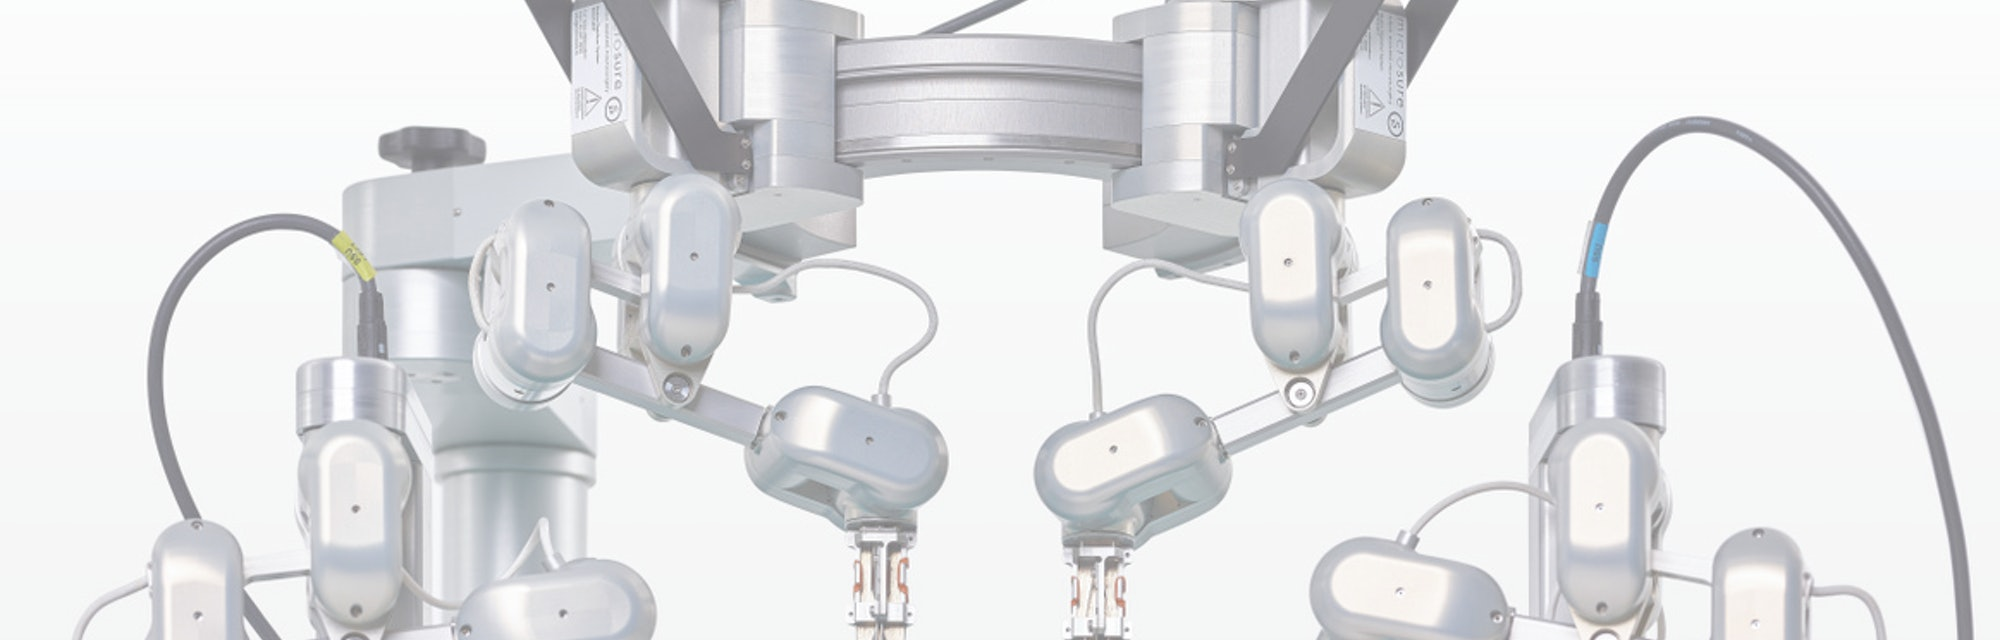 MicroSure's robotic supermicrosurgery platform as used in the trials.